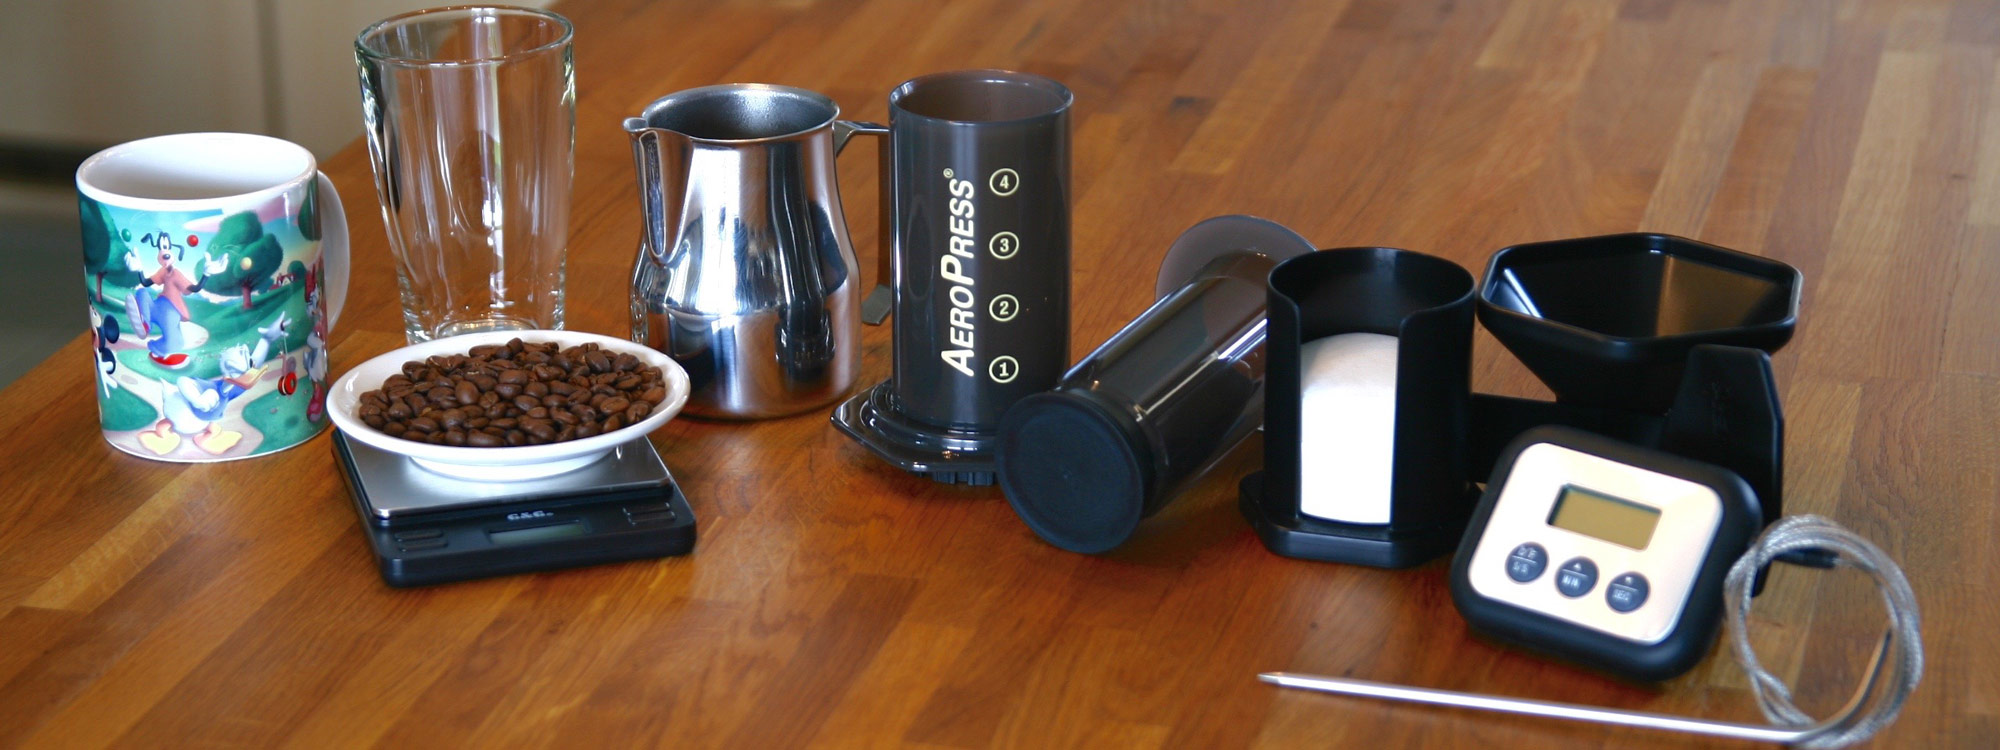 Brewing Methods: The AeroPress